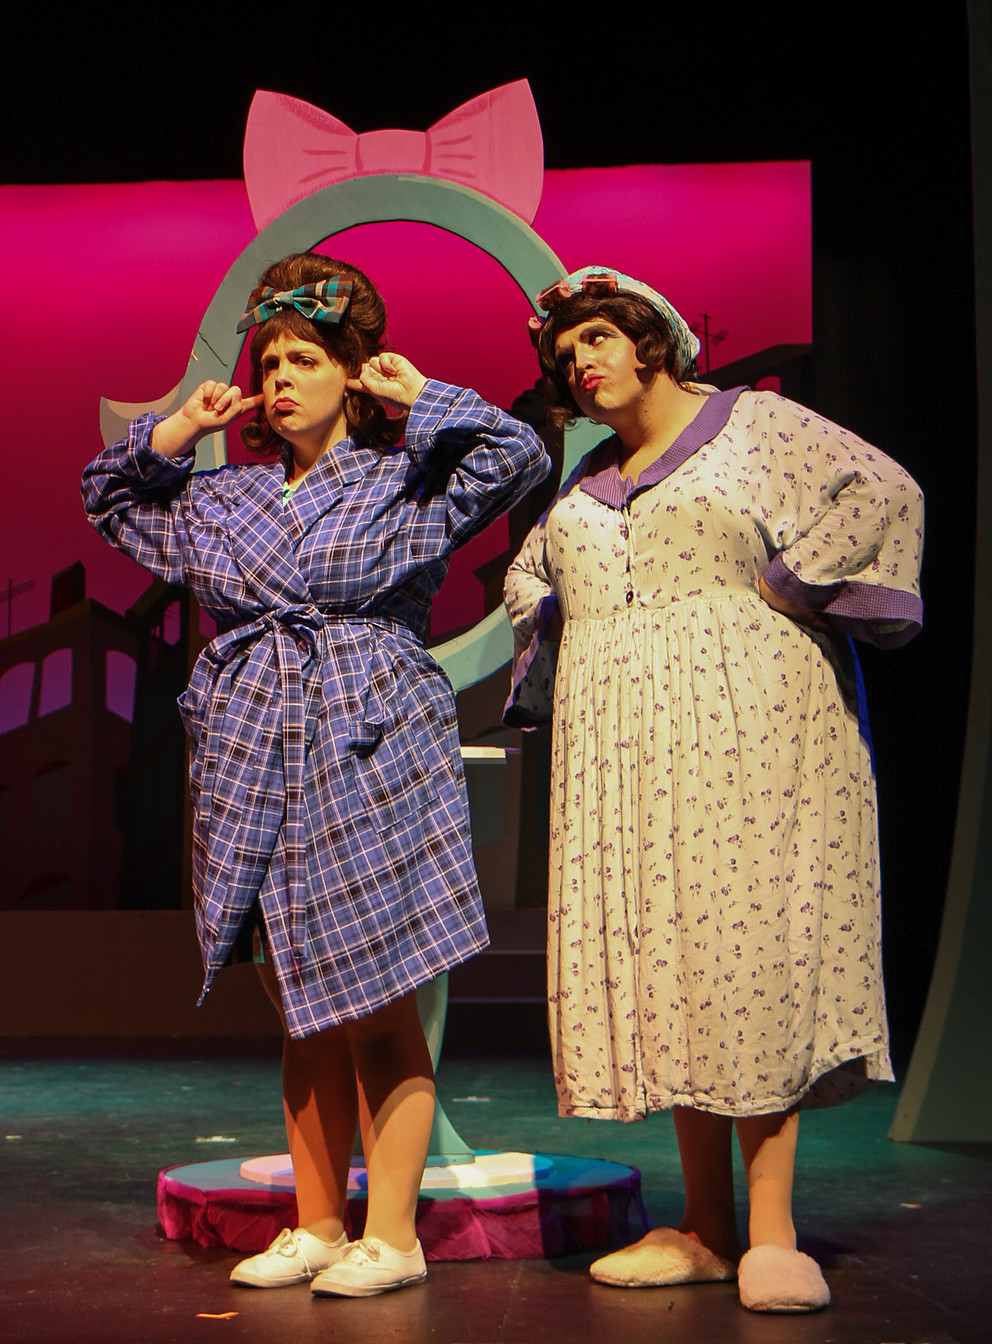 photo by Beth Curley/Julian Wiles   Hairspray , 2016  playing Edna